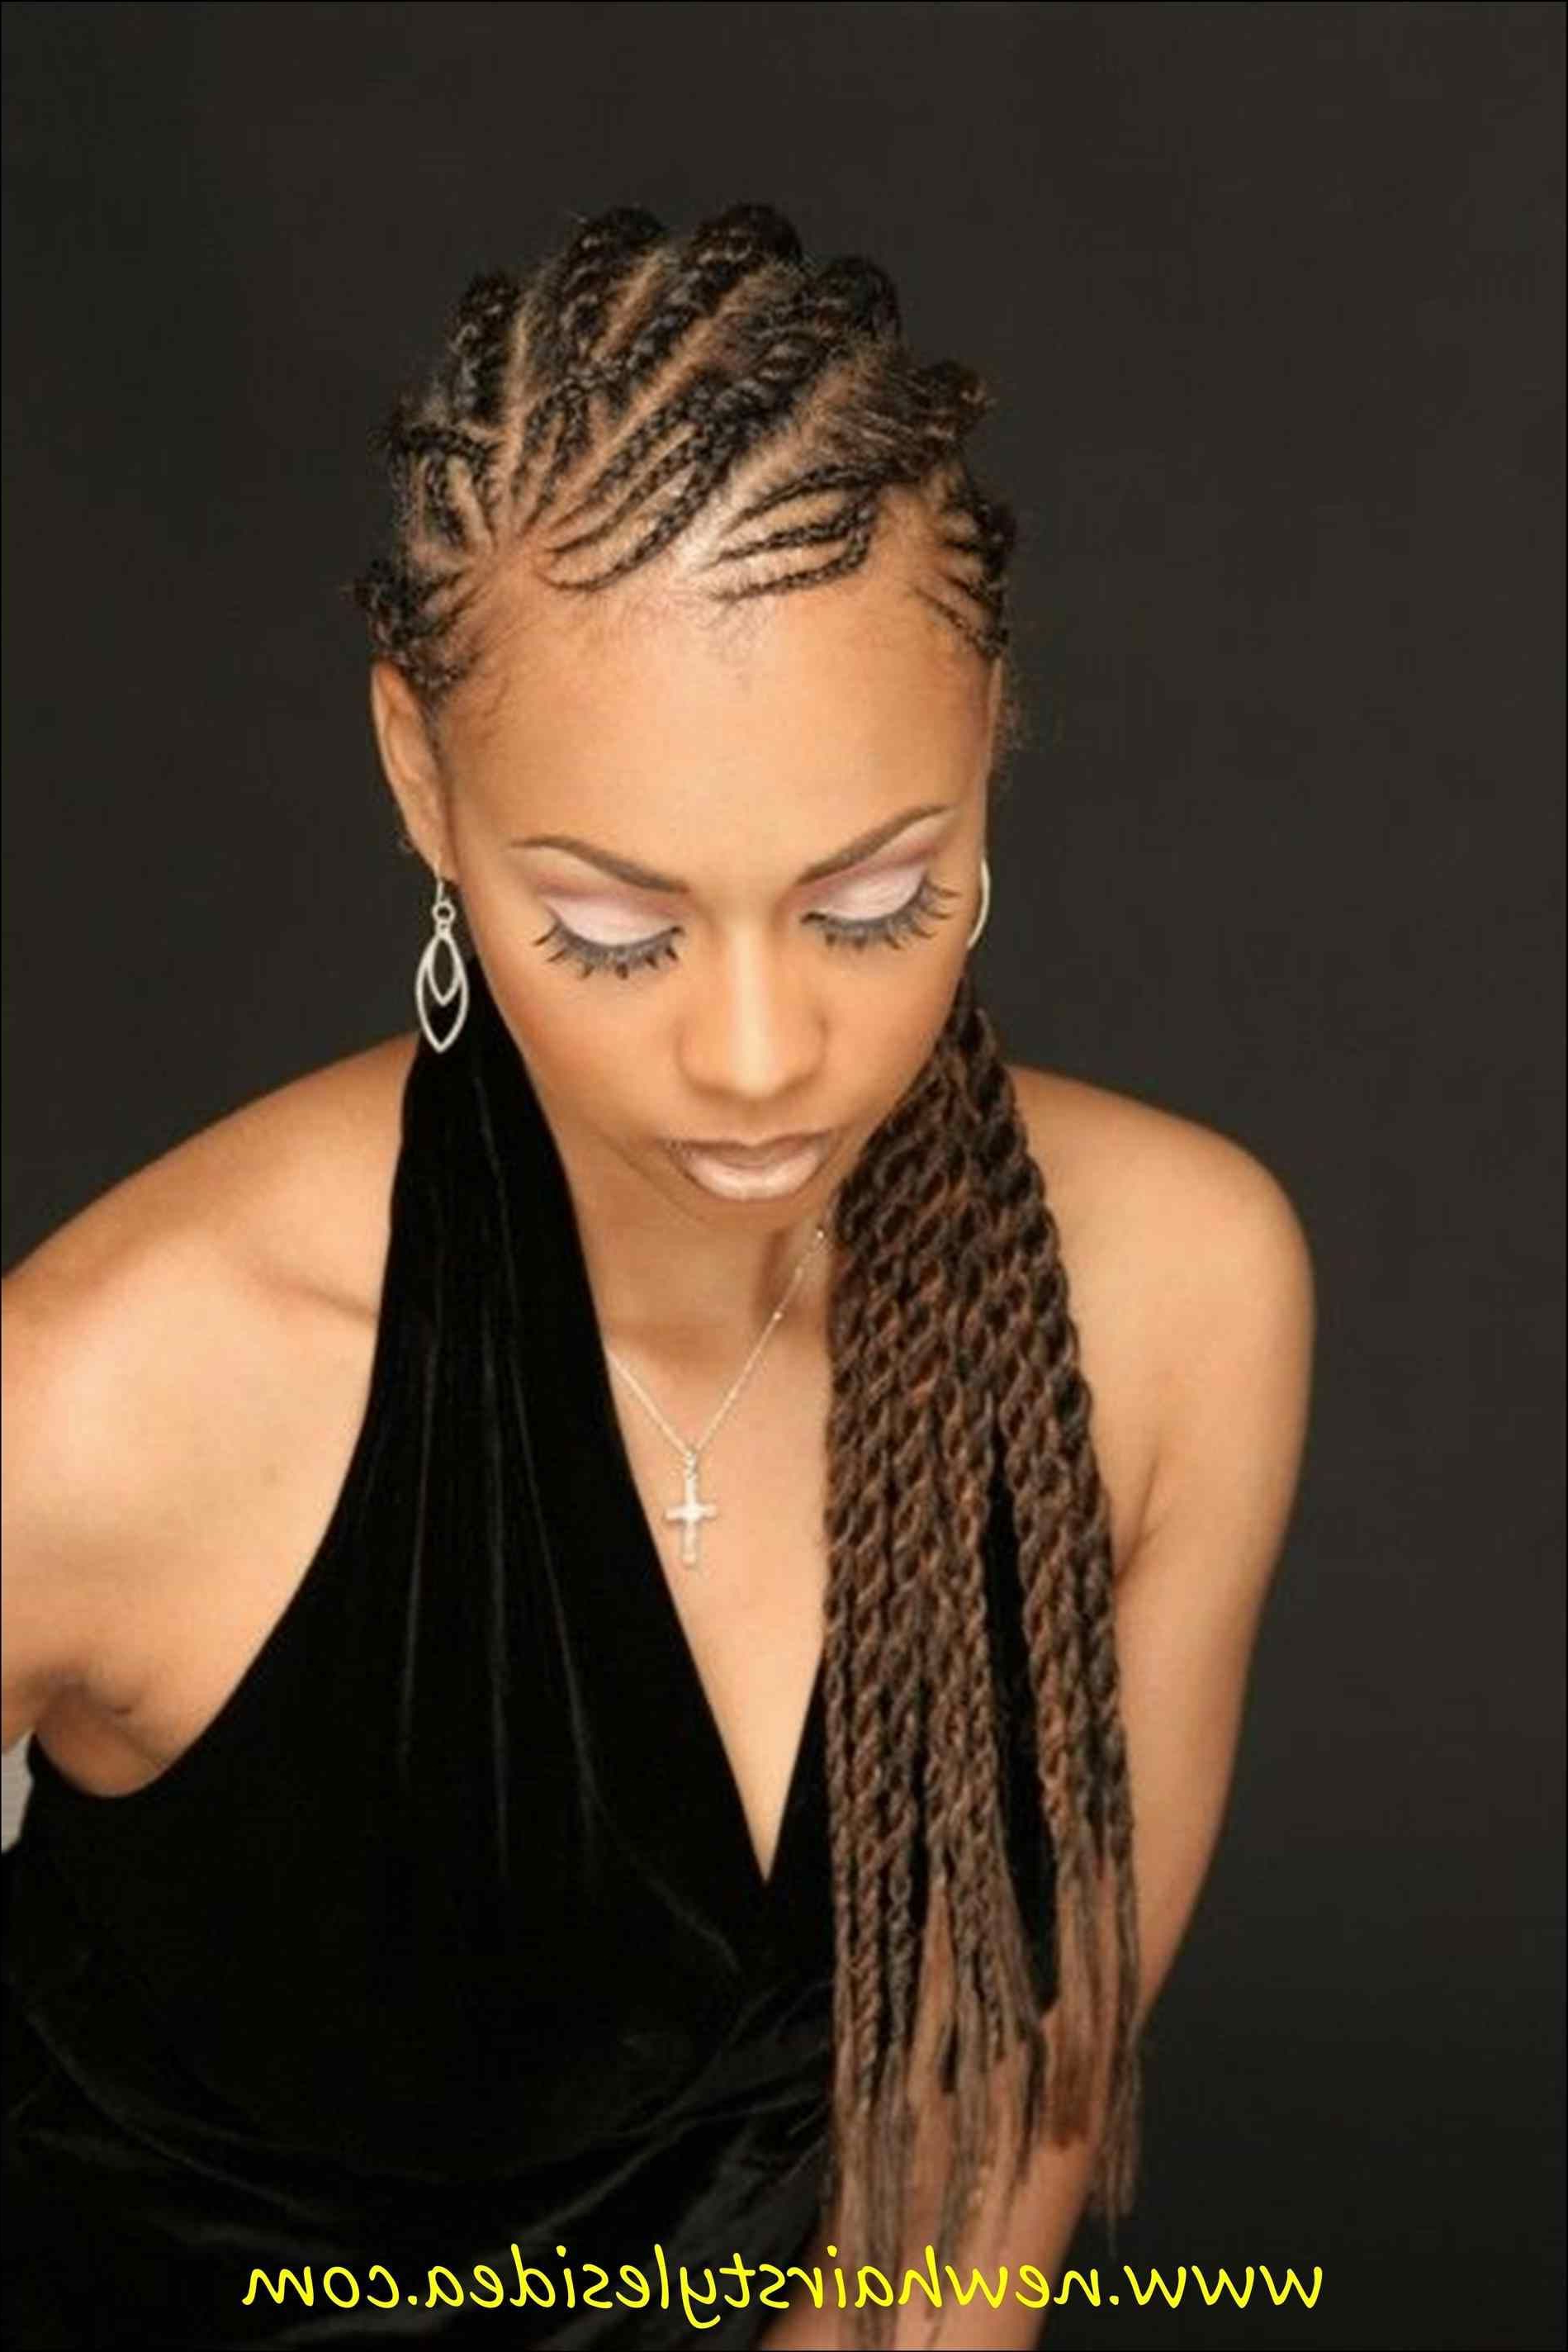 Alicia Keys Braids Hairstyles Cute Hairstyle Bestcoolcom Throughout Most Popular Alicia Keys Glamorous Mohawk Hairstyles (View 2 of 20)